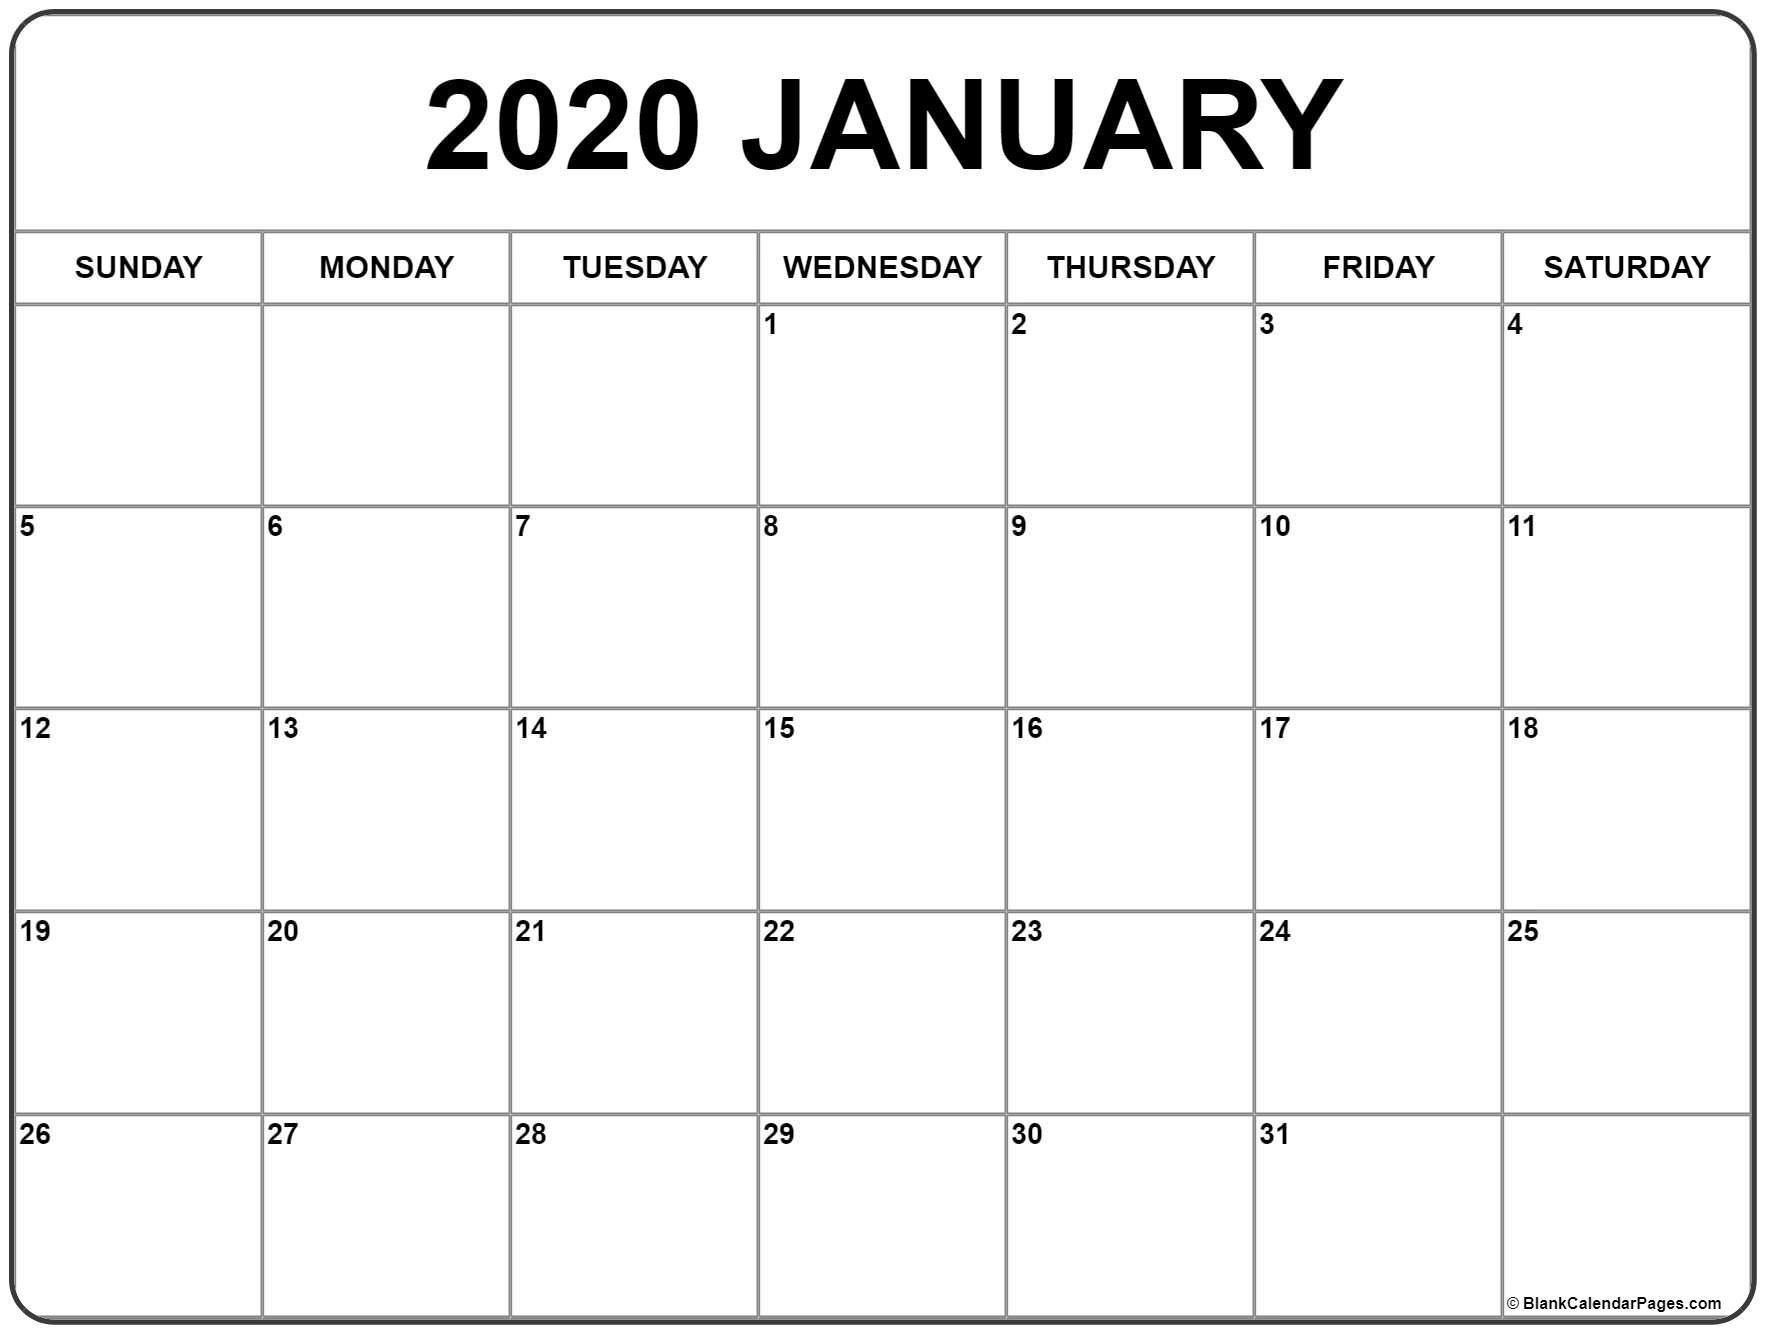 January 2020 Calendar Printable (With Images) | Monthly 8 Week Calendar Doc